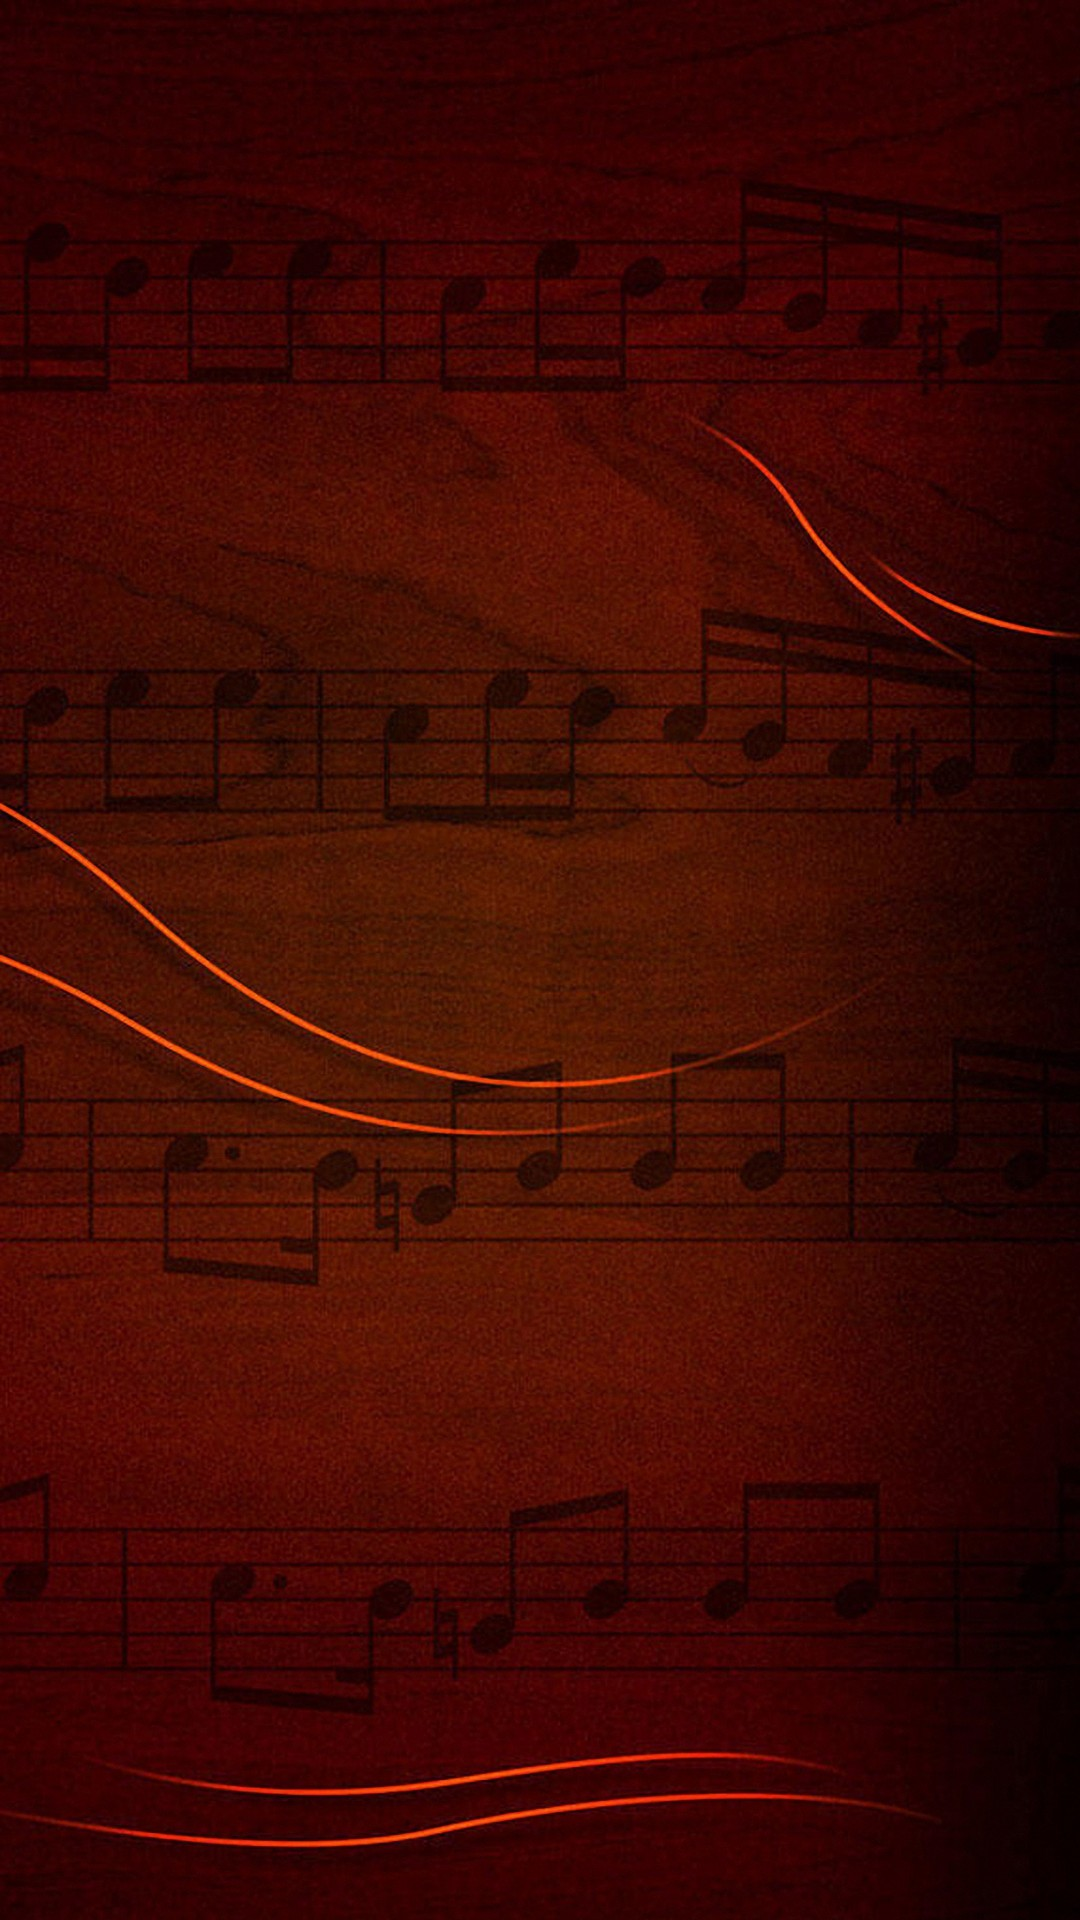 guitar note music iphone 6 wallpapers HD